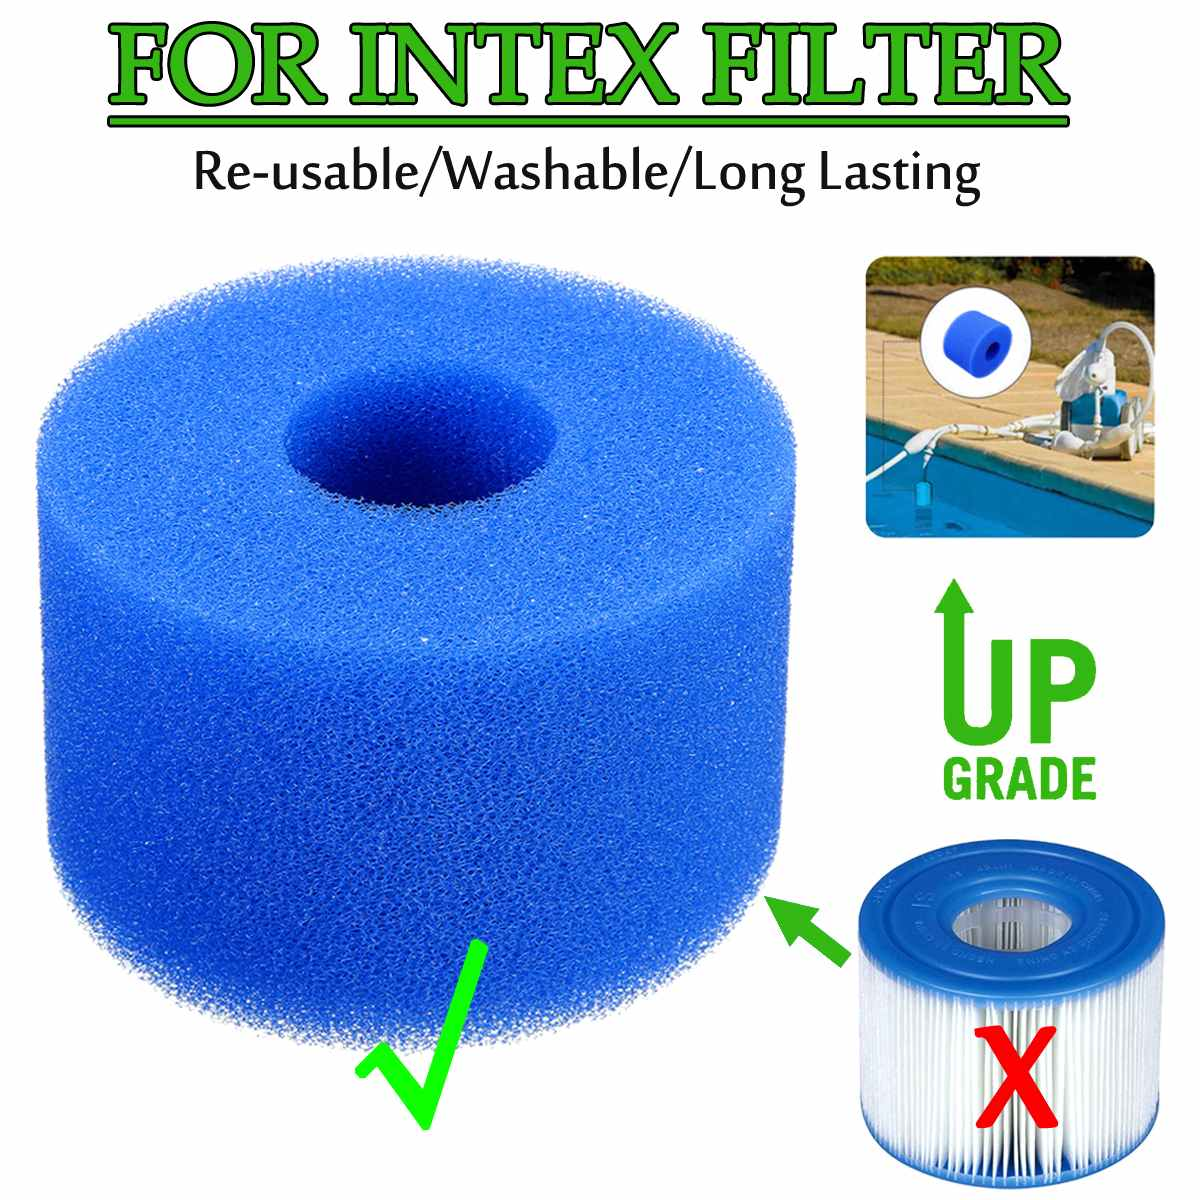 Foam Filter Sponge Swimming Pool Intex S1 Type A Reusable Washable Biofoam Cleaner Foam Pool Filter Sponges Swimming  Accessorie